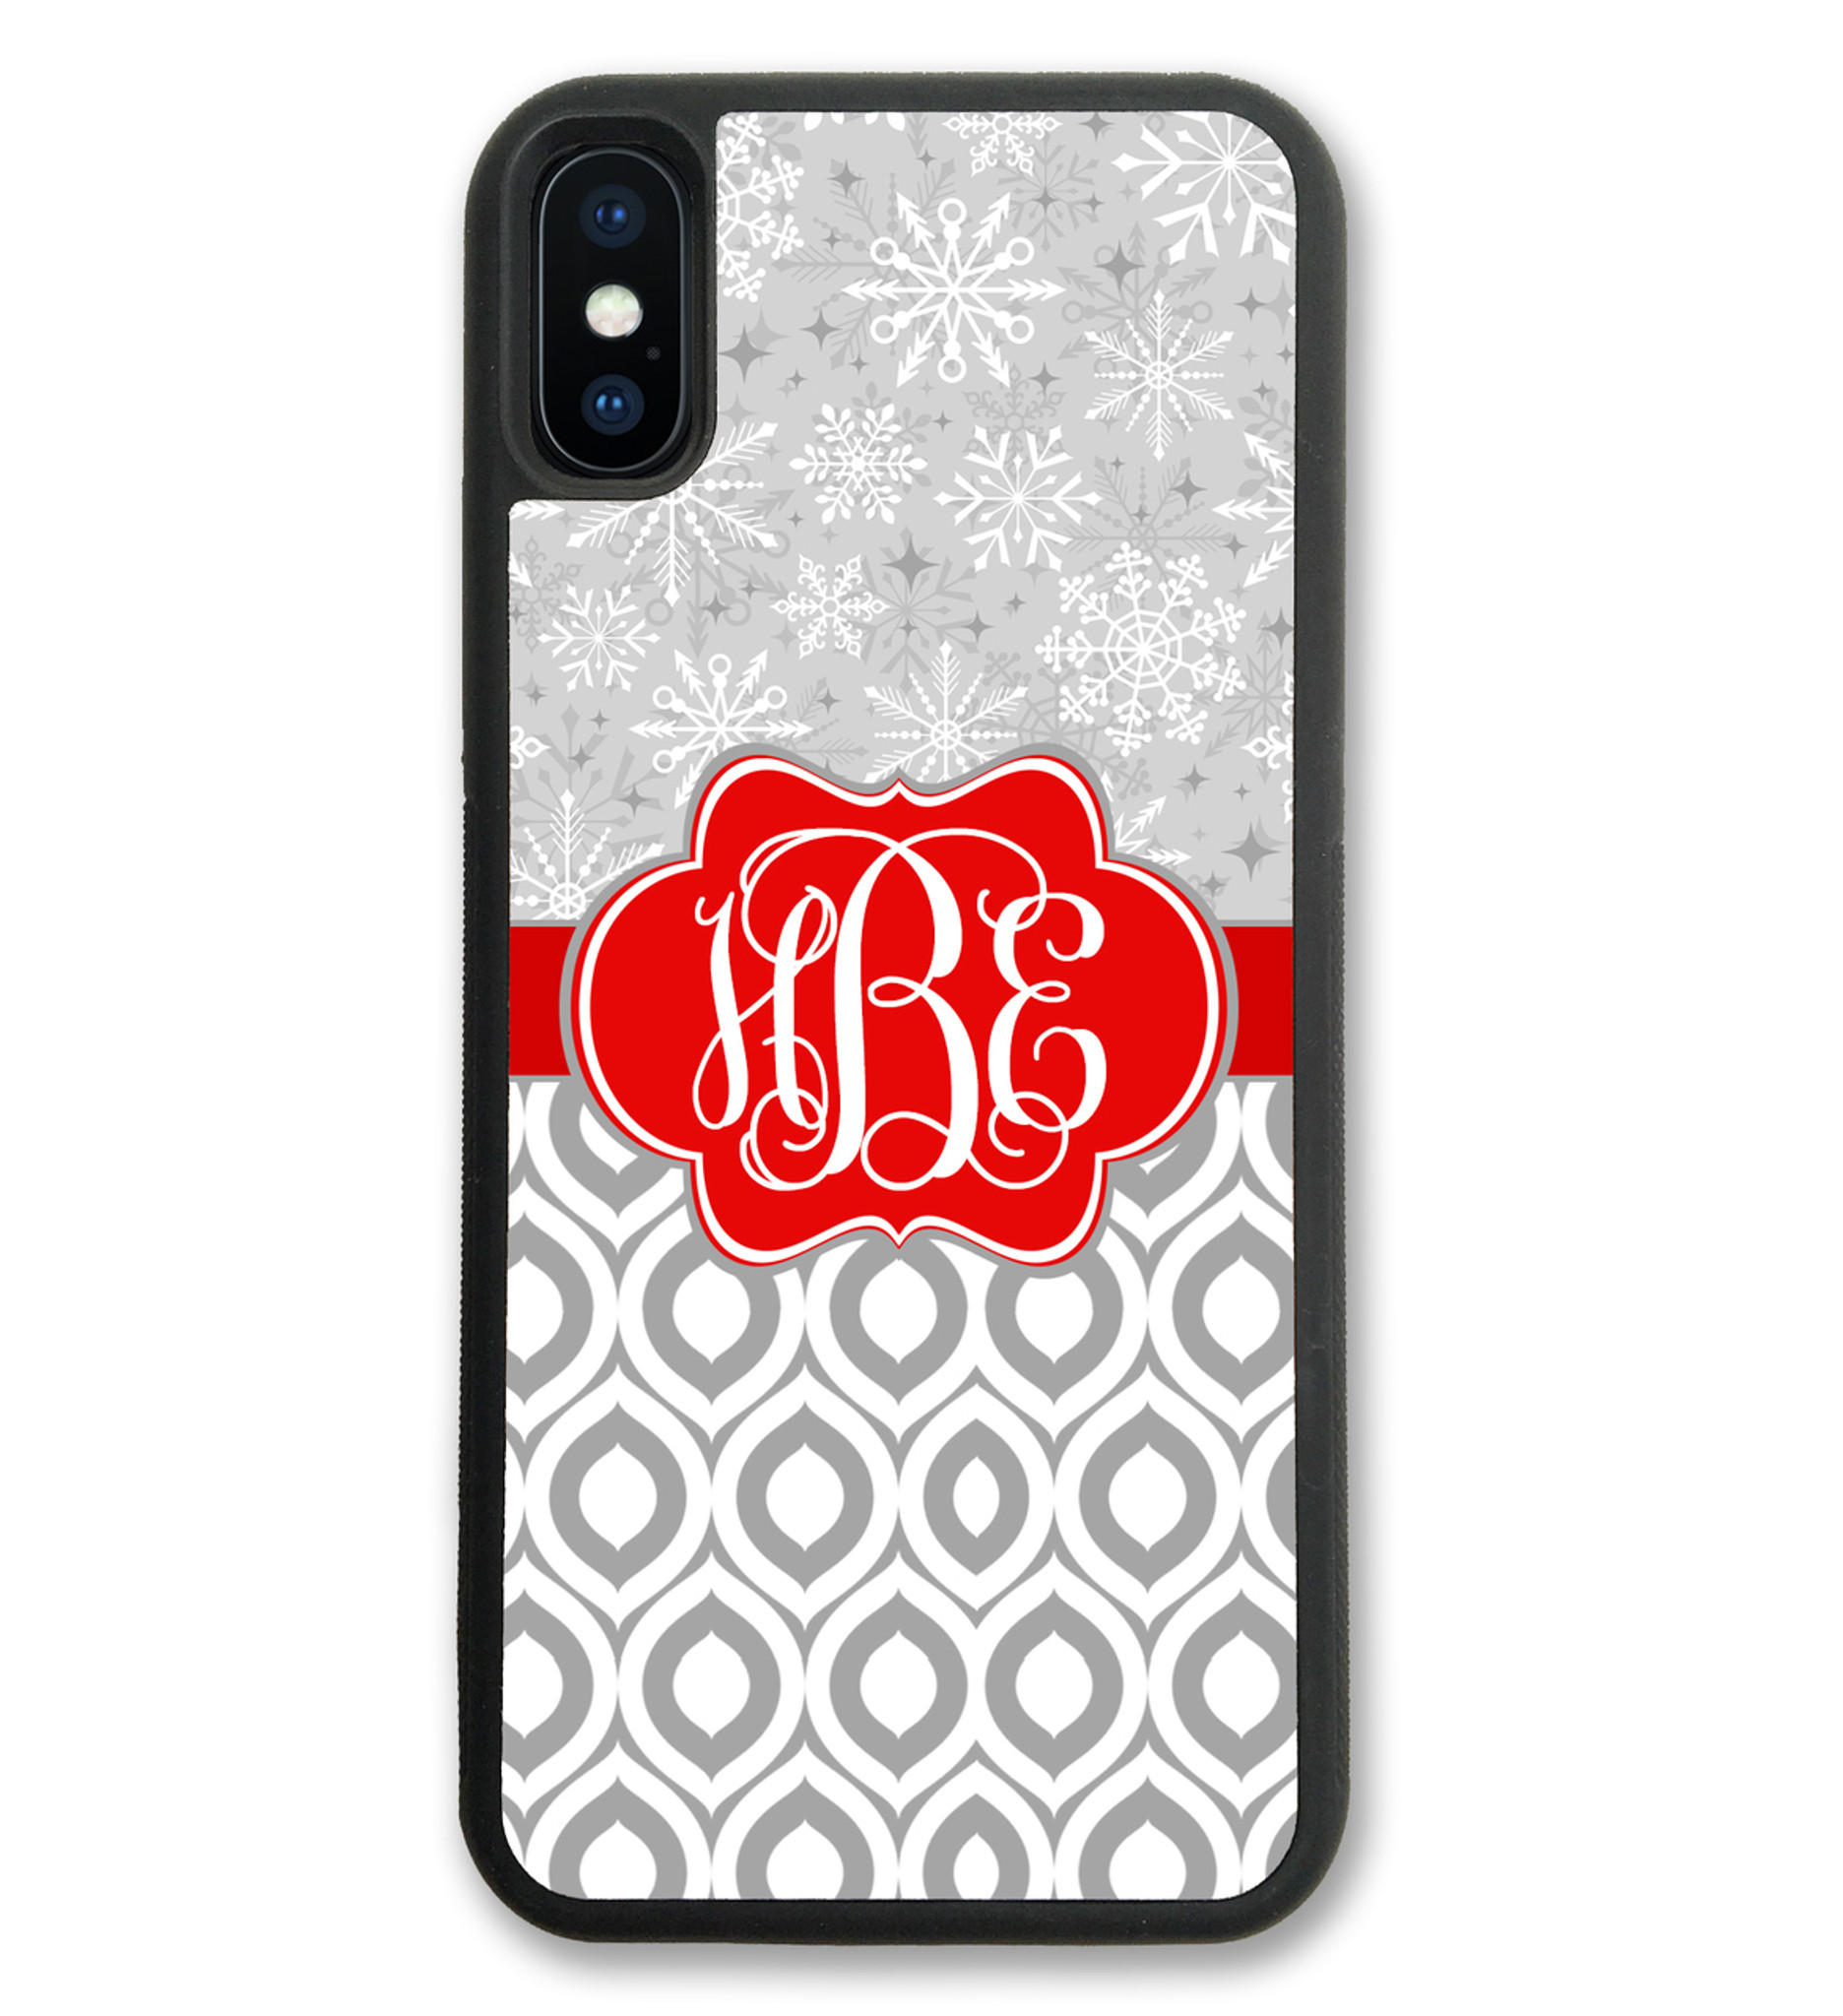 Christmas Iphone X Case.Christmas Iphone X Case Iphone 10 Case Iphone 8 Case Iphone 8 Plus Case All Models